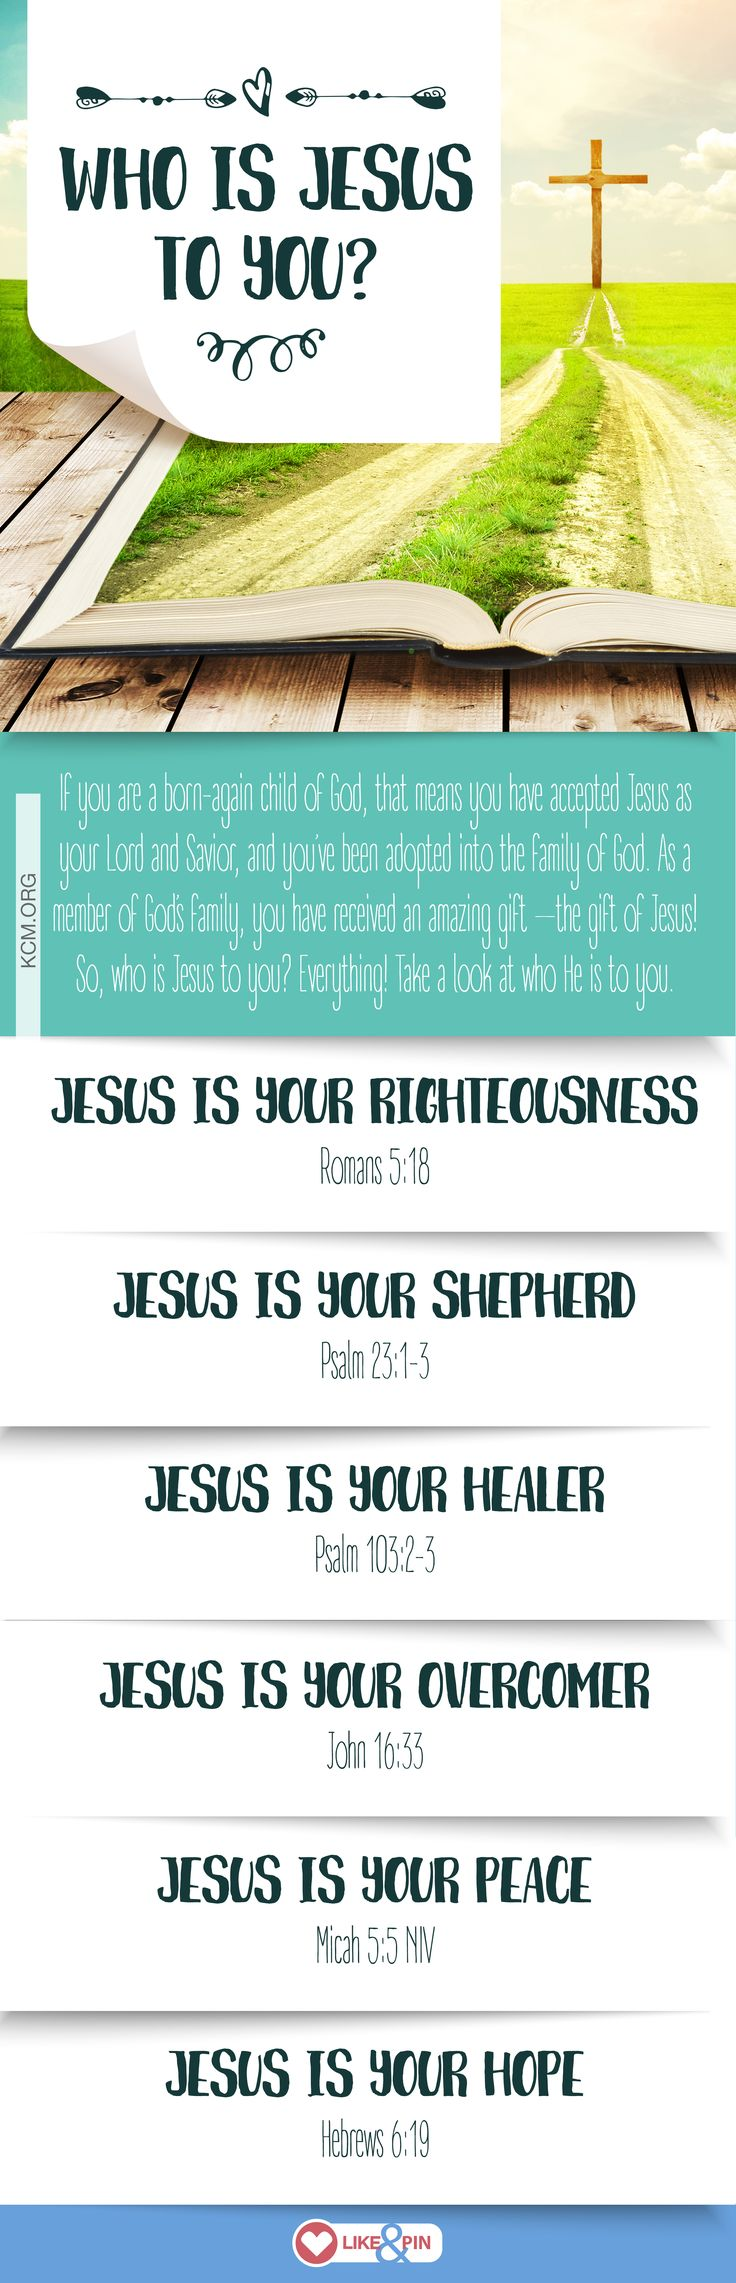 If you are a born-again child of God, that means you have accepted Jesus as your Lord and Savior, and you've been adopted into the family of God. As a member of God's family, you have received an amazing gift —the gift of Jesus! So, who is Jesus to you? Everything! Learn more about the gift of Jesus in this article: http://kennethcopelandministries.org/gift-lasts-forever-6-ways-jesus-ultimate-gift-mankind/